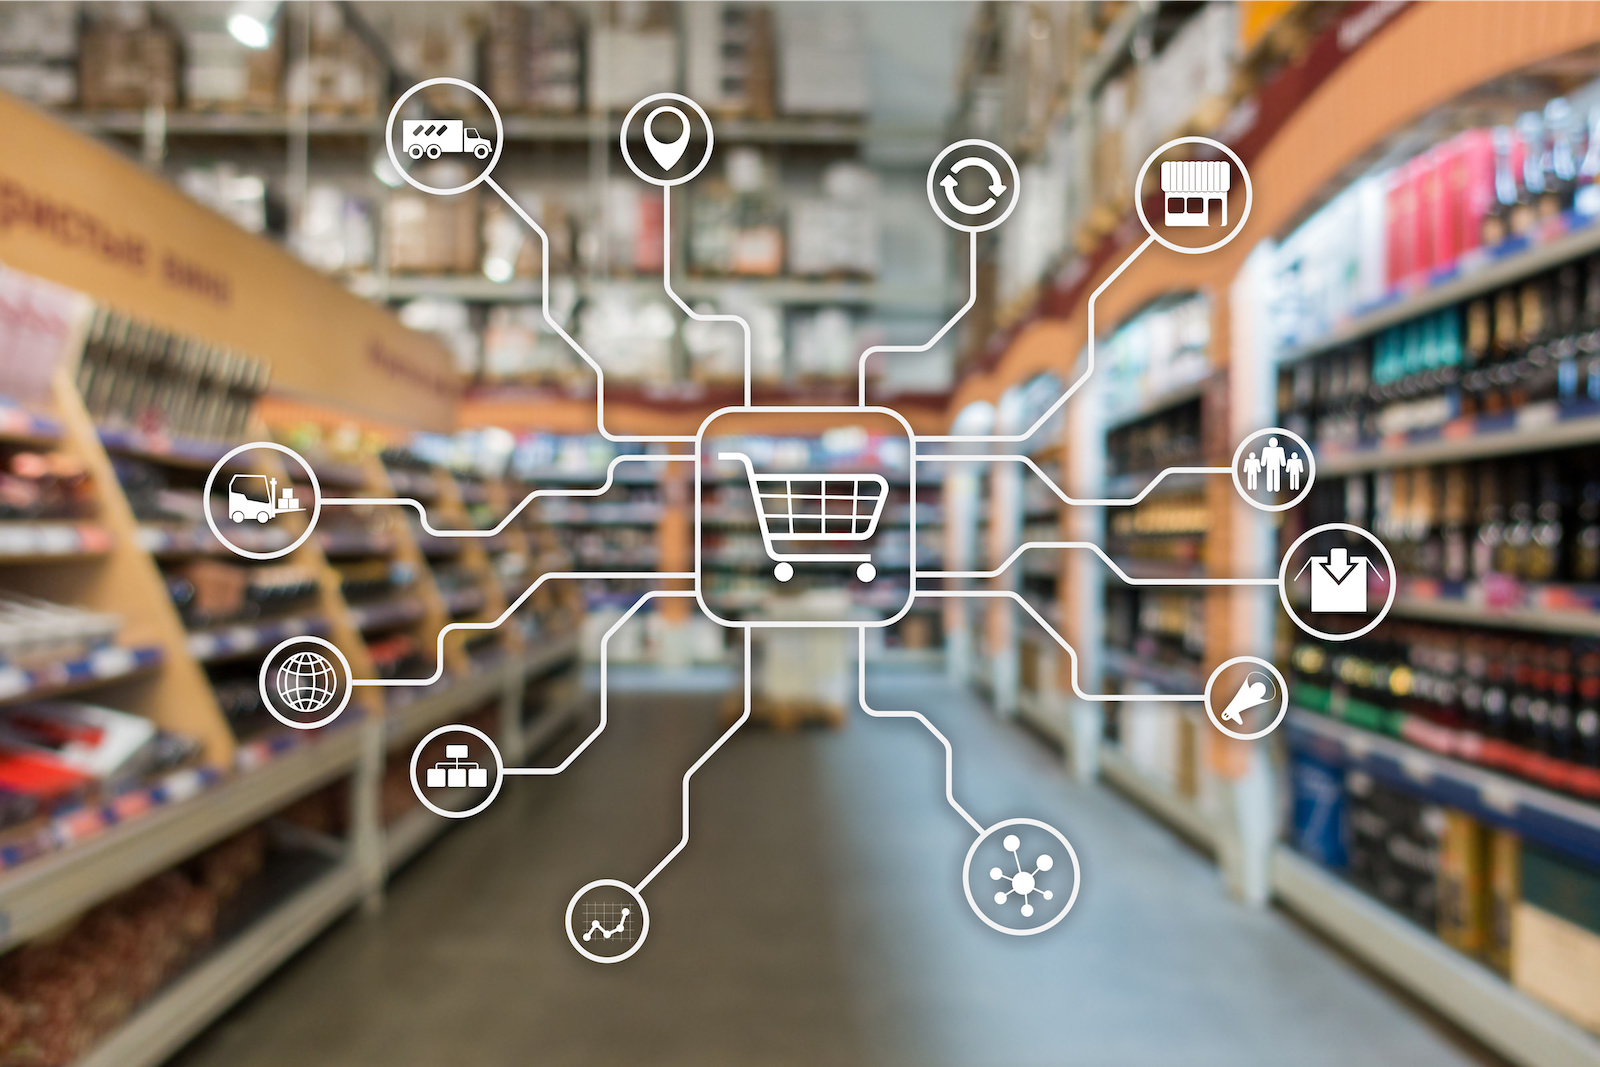 Seventy-six percent of retailers that use AI-driven tech for assortment planning report cost savings of 3 percent, yet adoption remains low, according to Coresight Research.